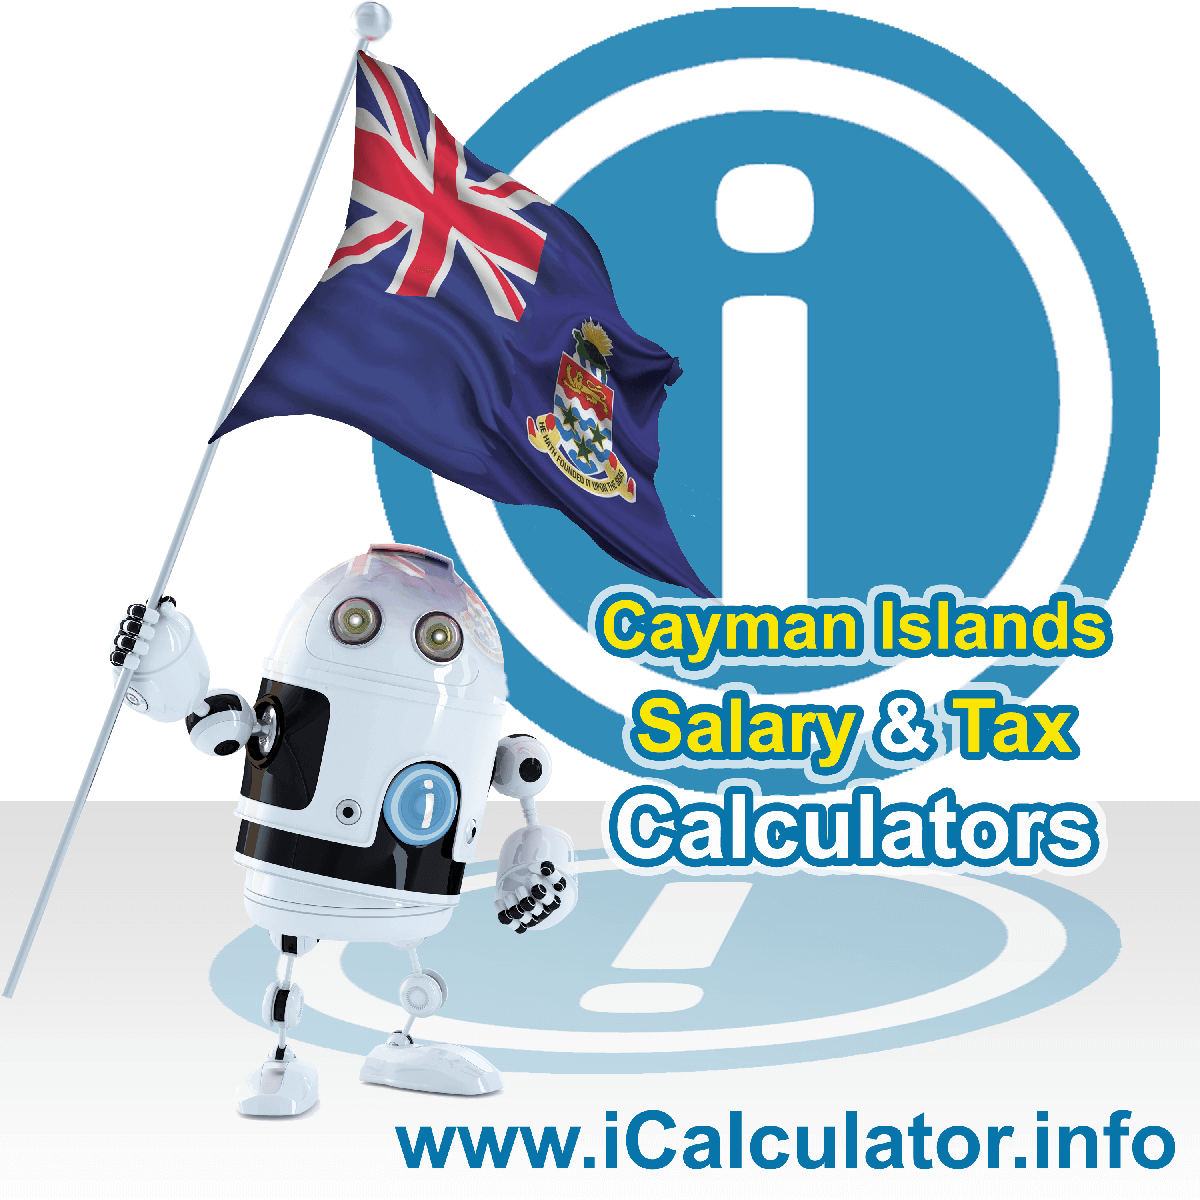 Cayman Islands Wage Calculator. This image shows the Cayman Islands flag and information relating to the tax formula for the Cayman Islands Tax Calculator